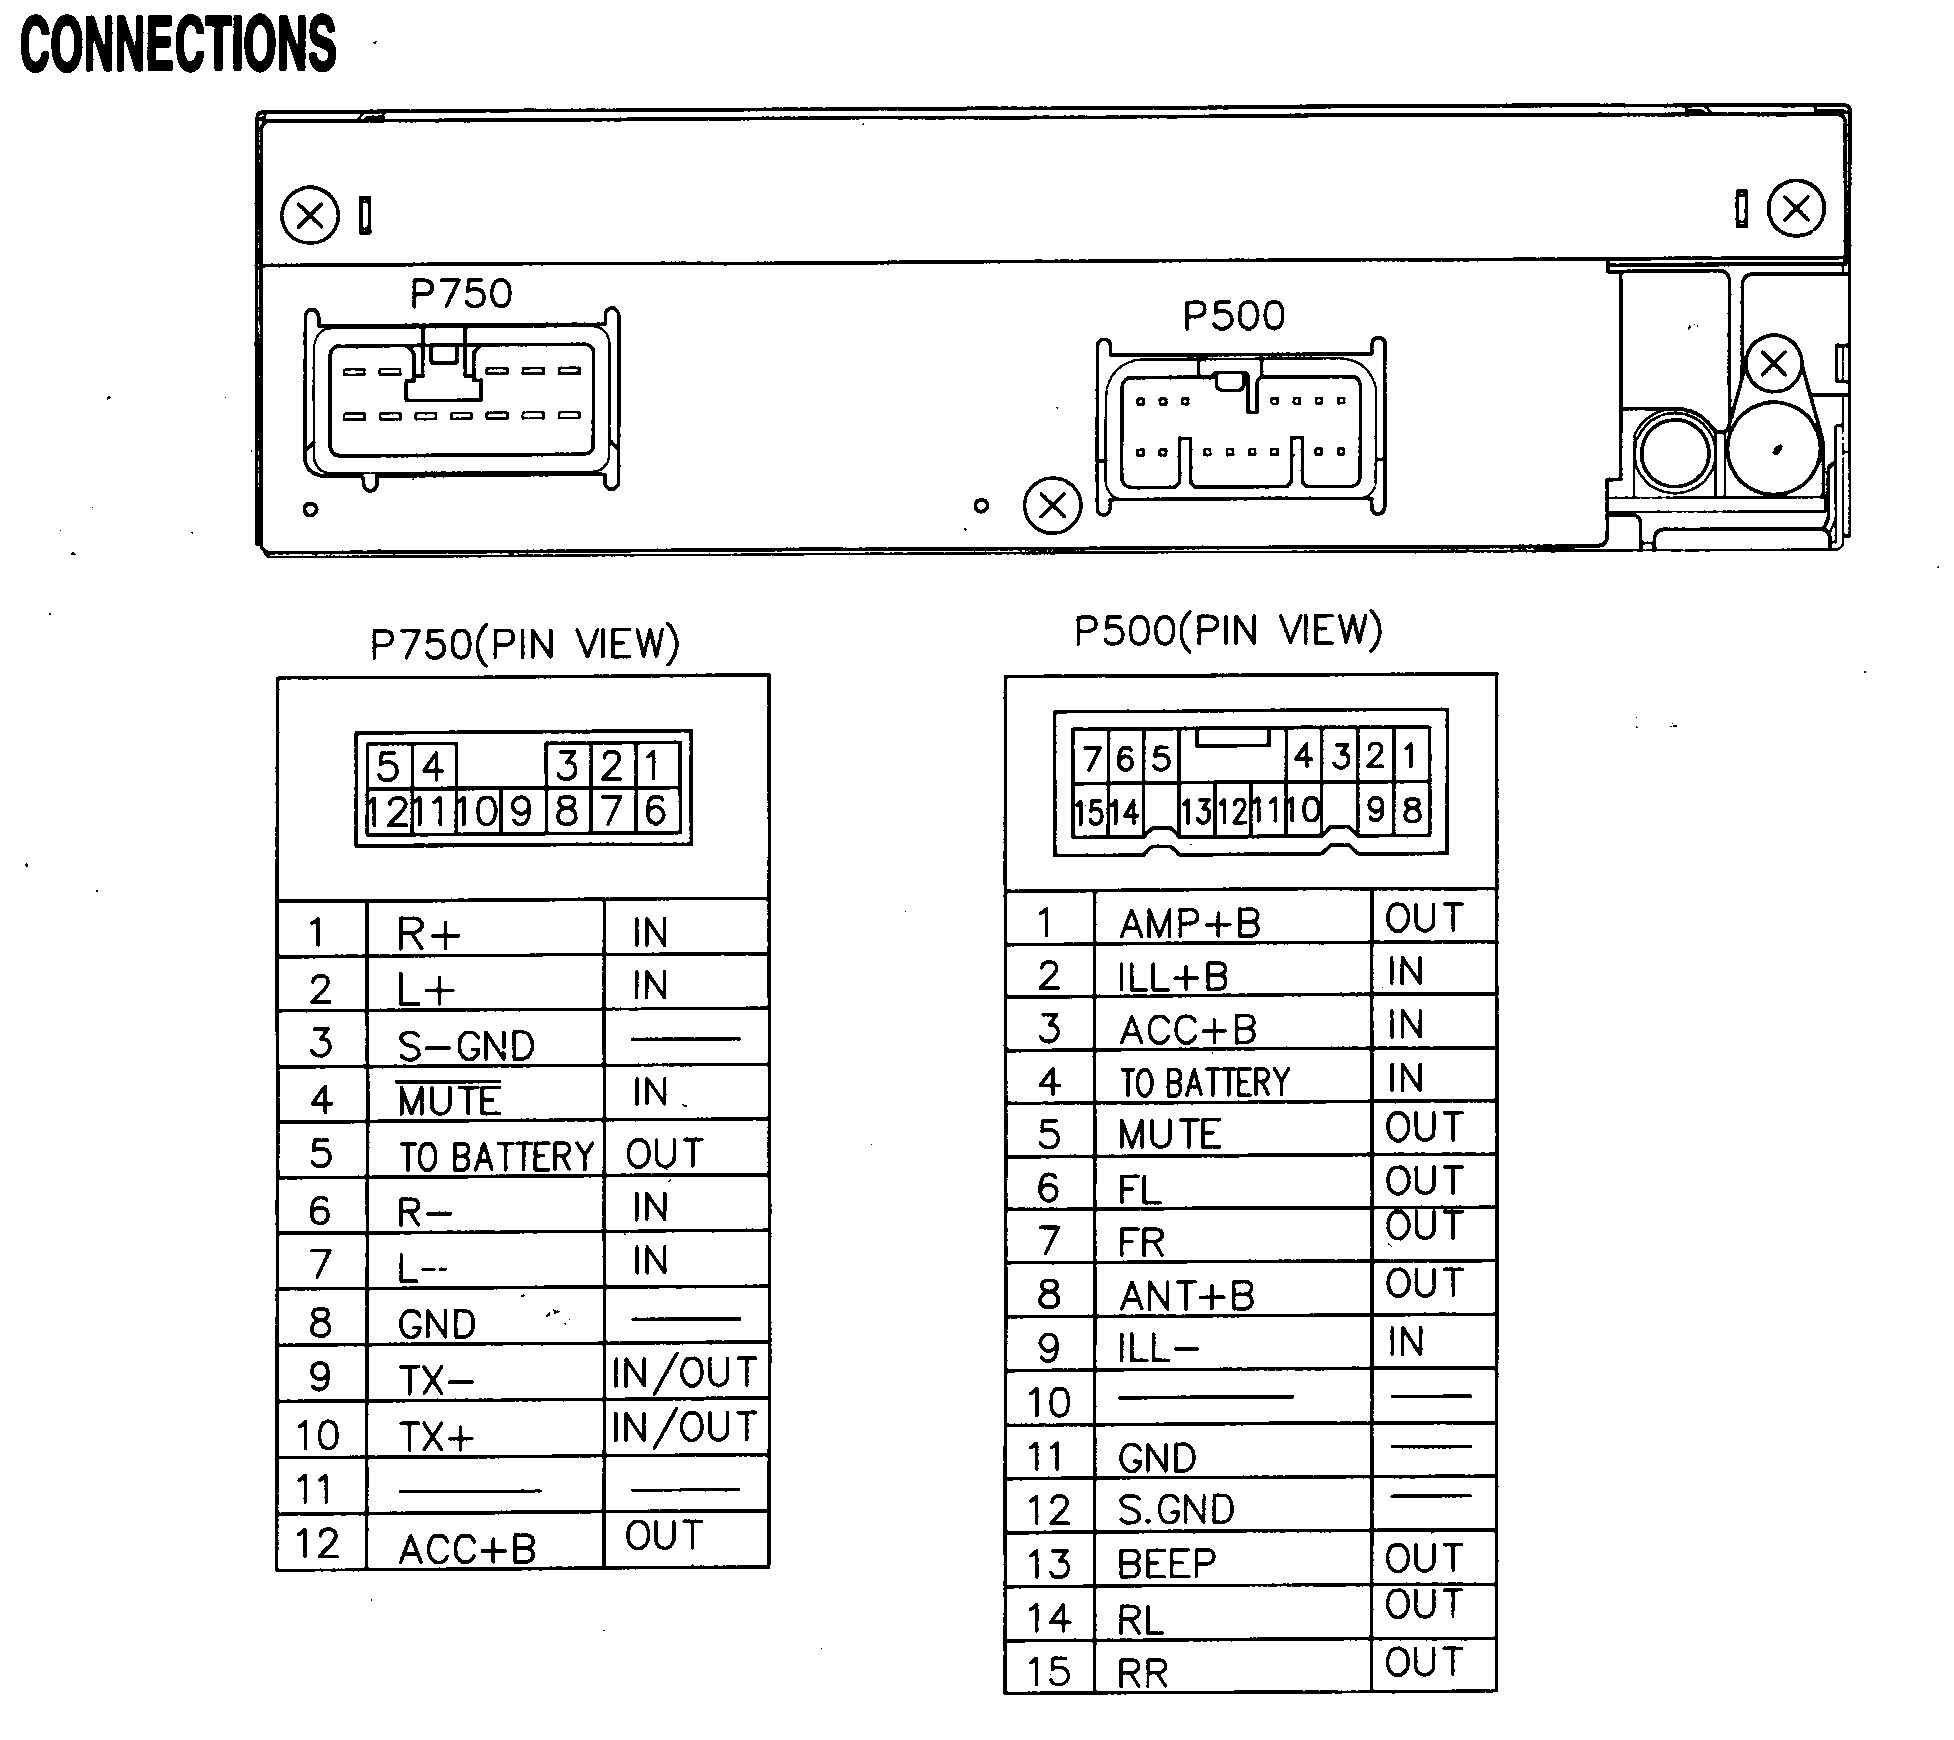 Factory Car Stereo Wiring Diagrams Connector 2000 Connectors Wiring Diagram Get Free Image About Wiring Of Factory Car Stereo Wiring Diagrams